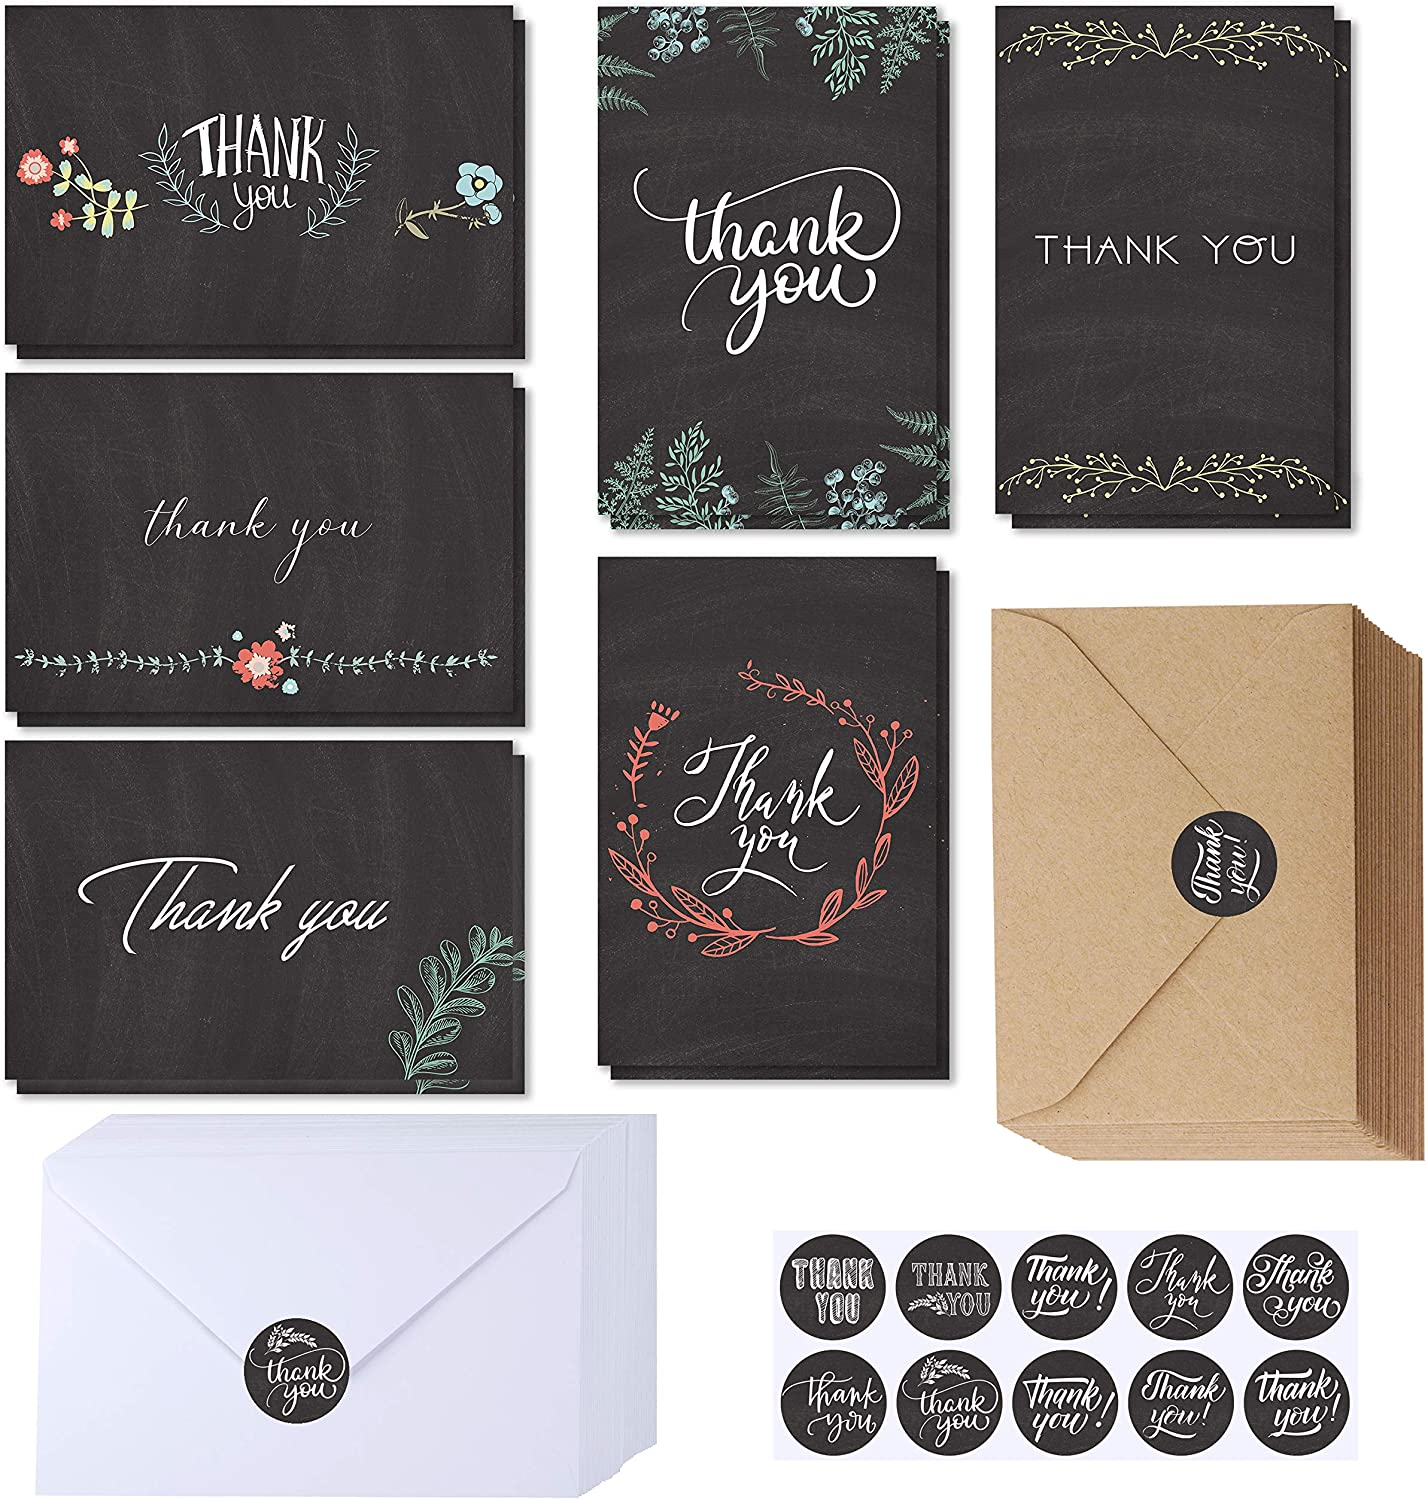 Bombing new Max 46% OFF work Supla 150 Sets Thank You Cards with Bulk Stickers Envelopes Than